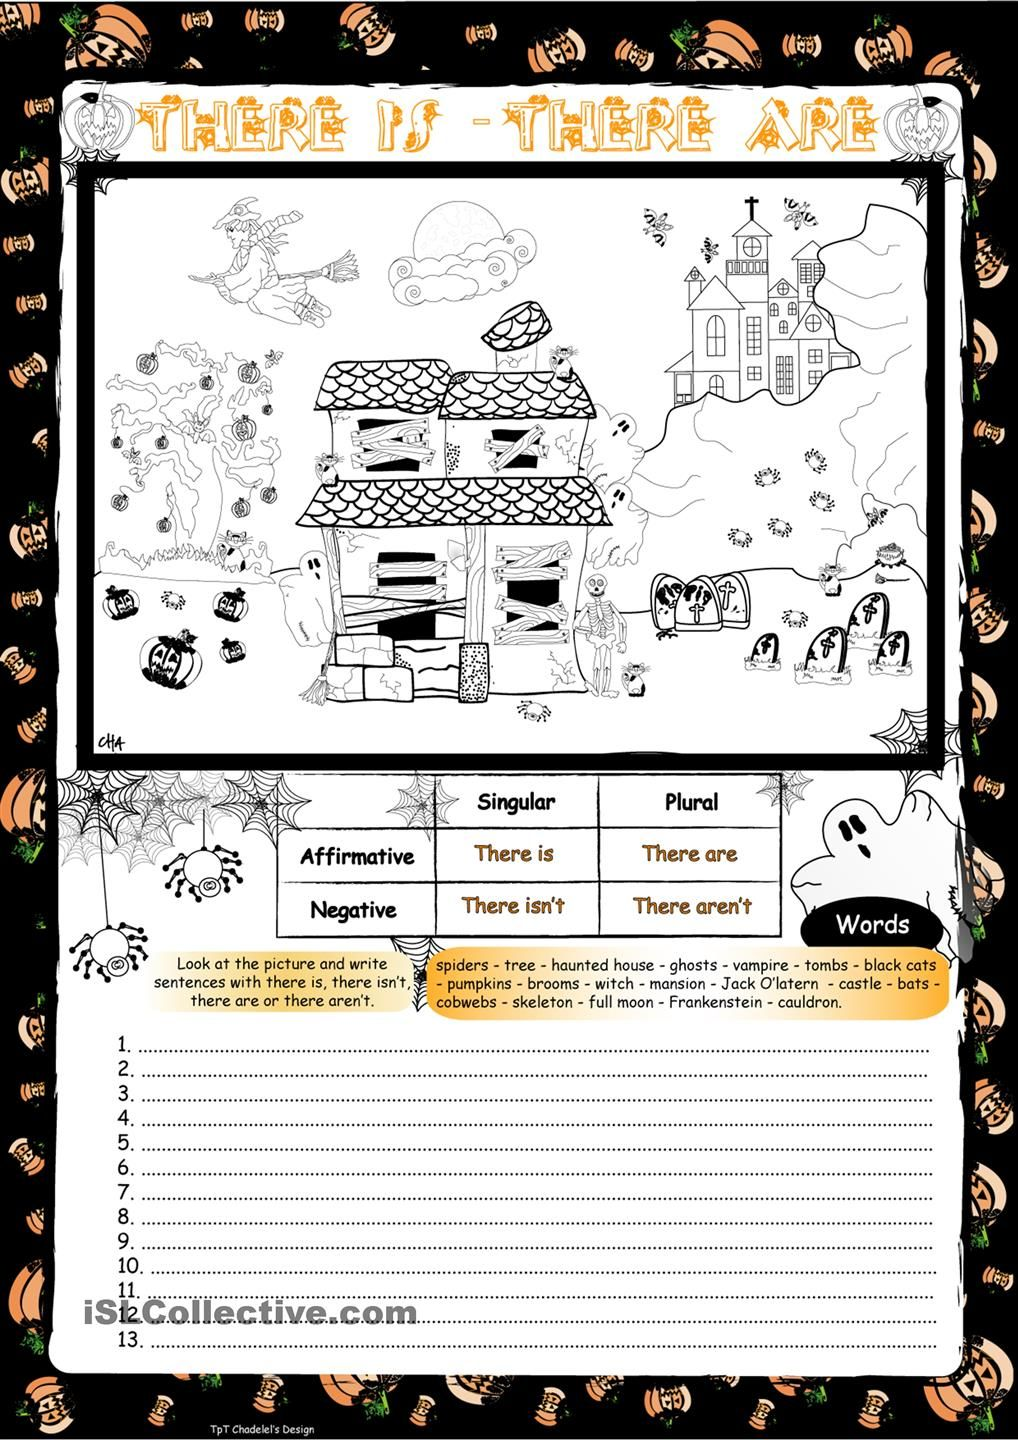 There Is There Are Is There A Skeleton School Activities Halloween Activities Halloween Kid Games [ 1440 x 1018 Pixel ]